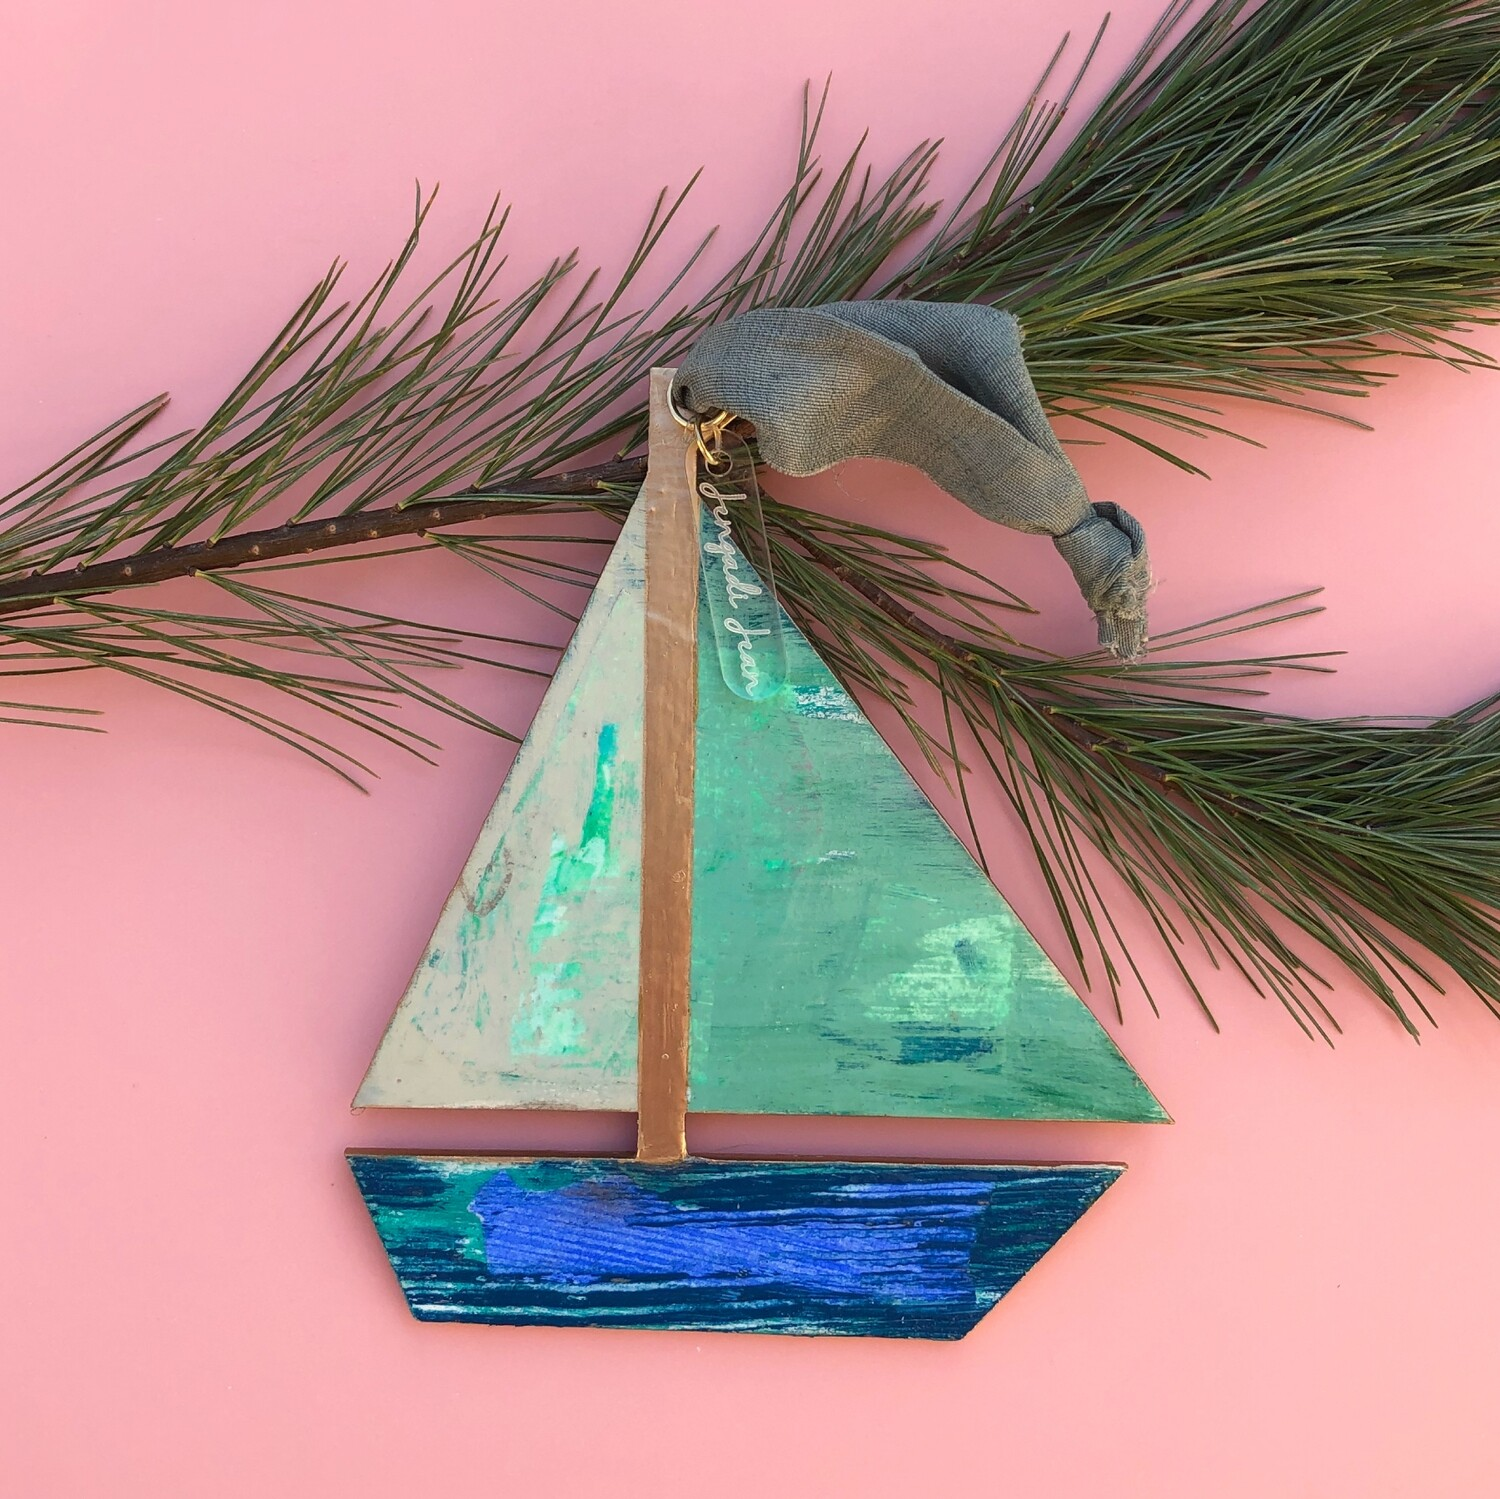 Sailboat Ornament No. 24